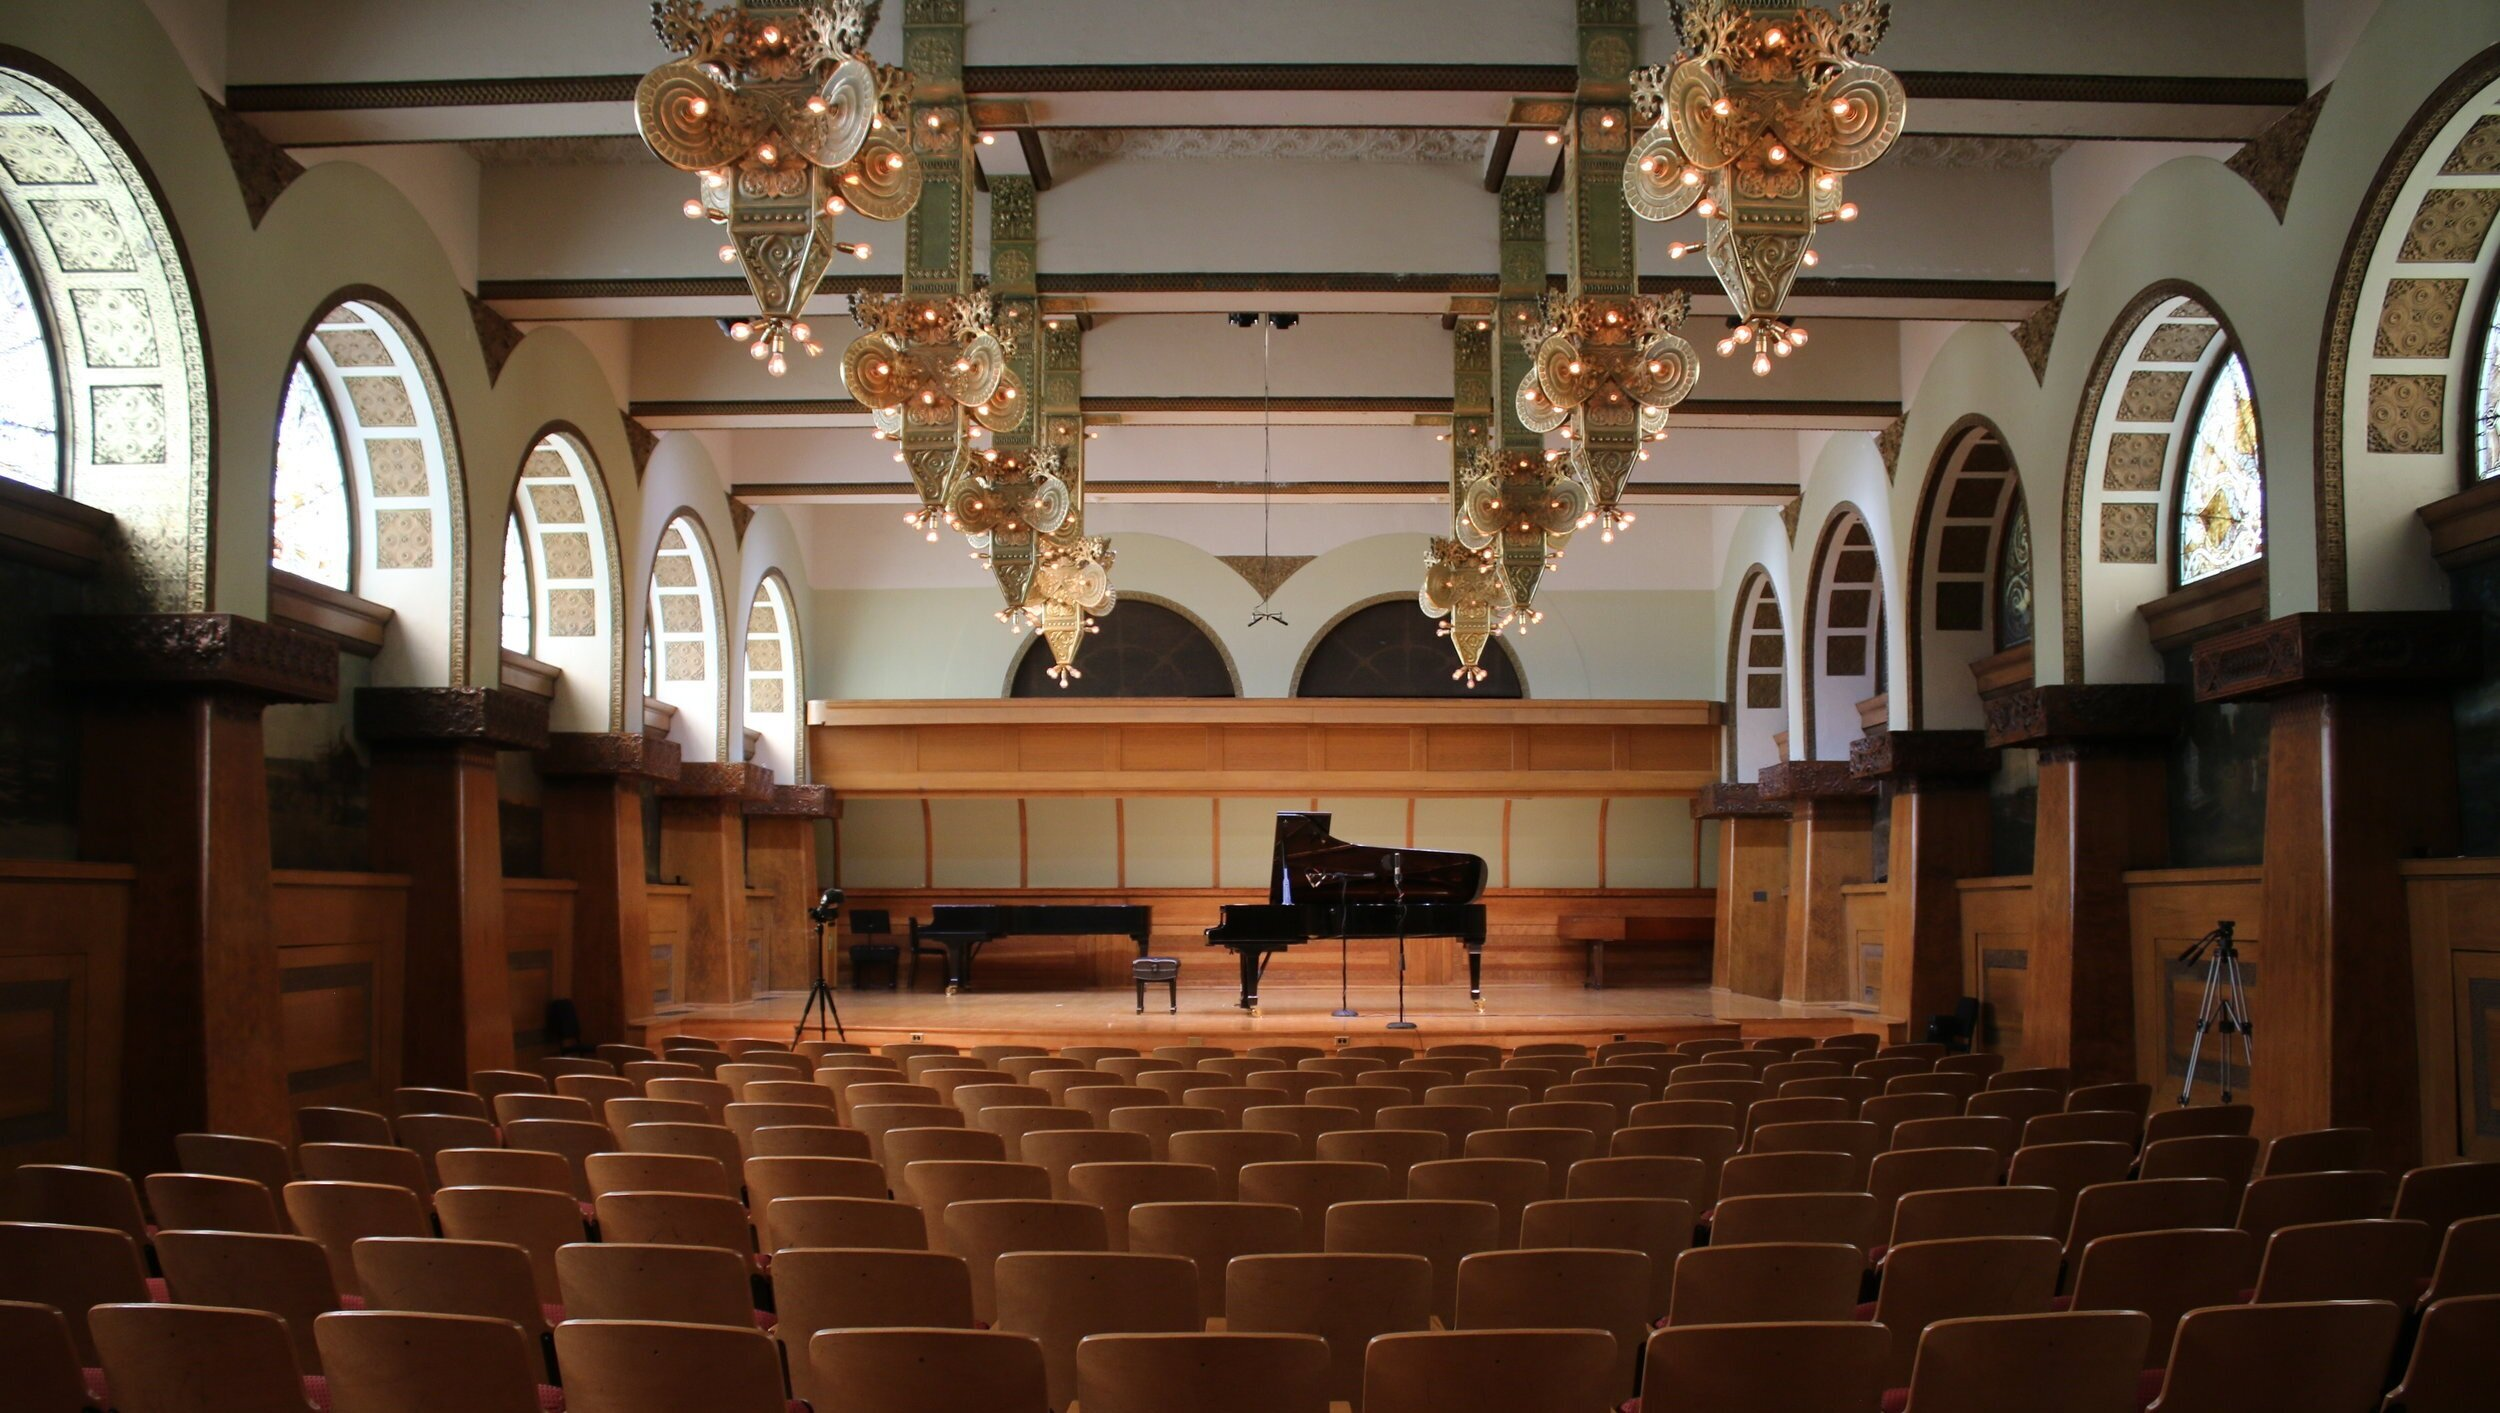 Ganz Hall at Roosevelt University . Ganz is available to reserve for recordings through Roosevelt staff pianists.